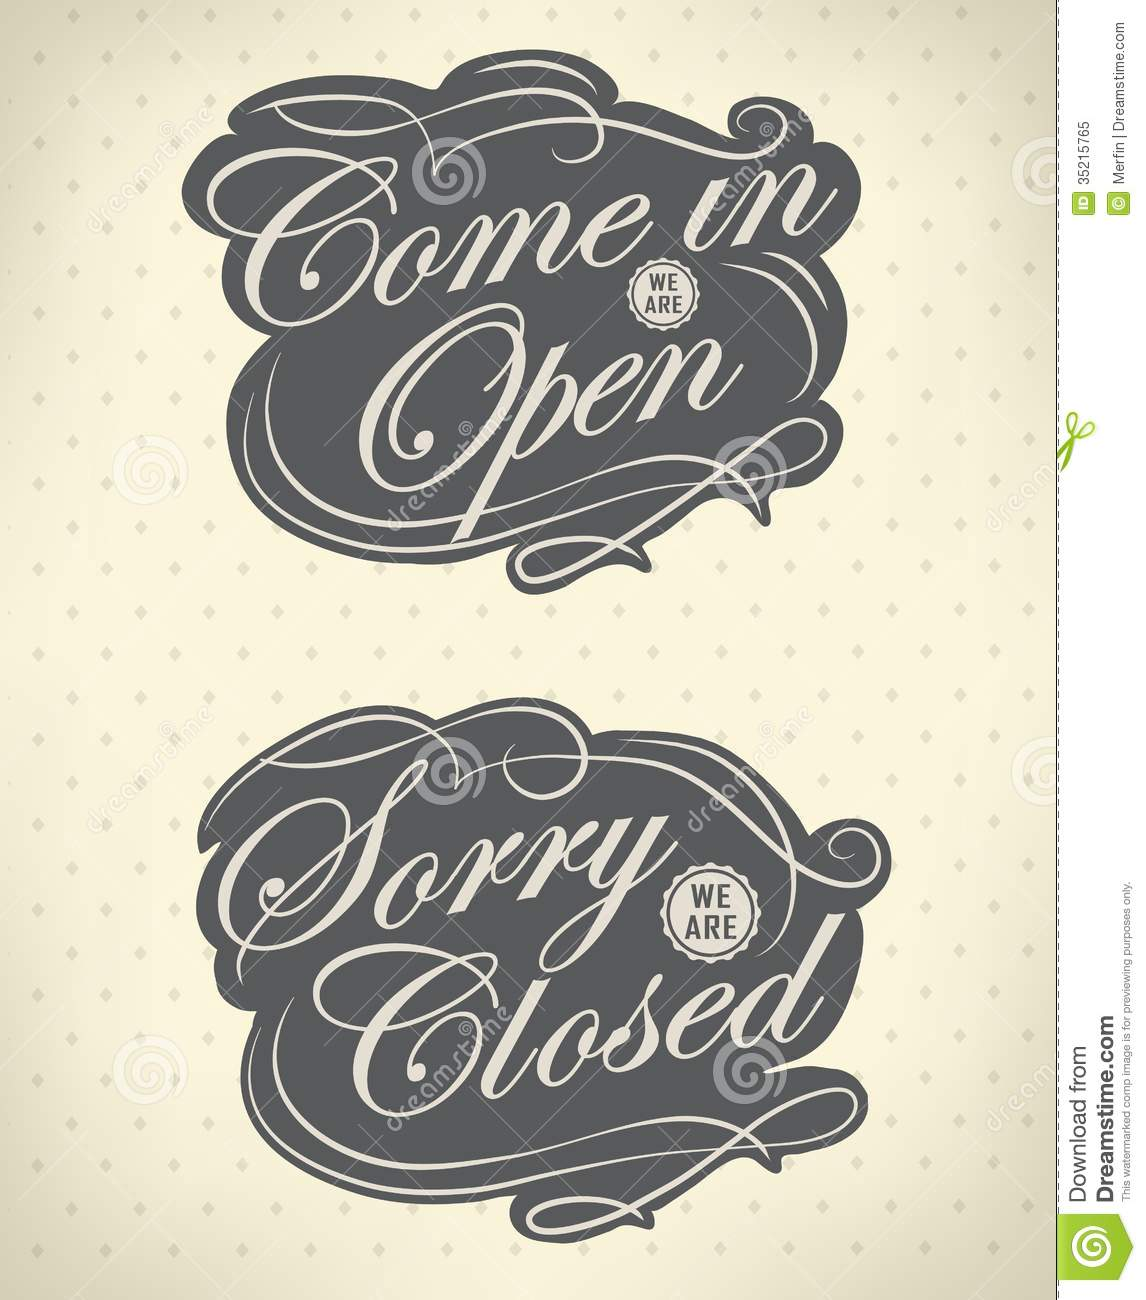 Open And Closed Vintage Retro Signs Royalty Free Stock ...